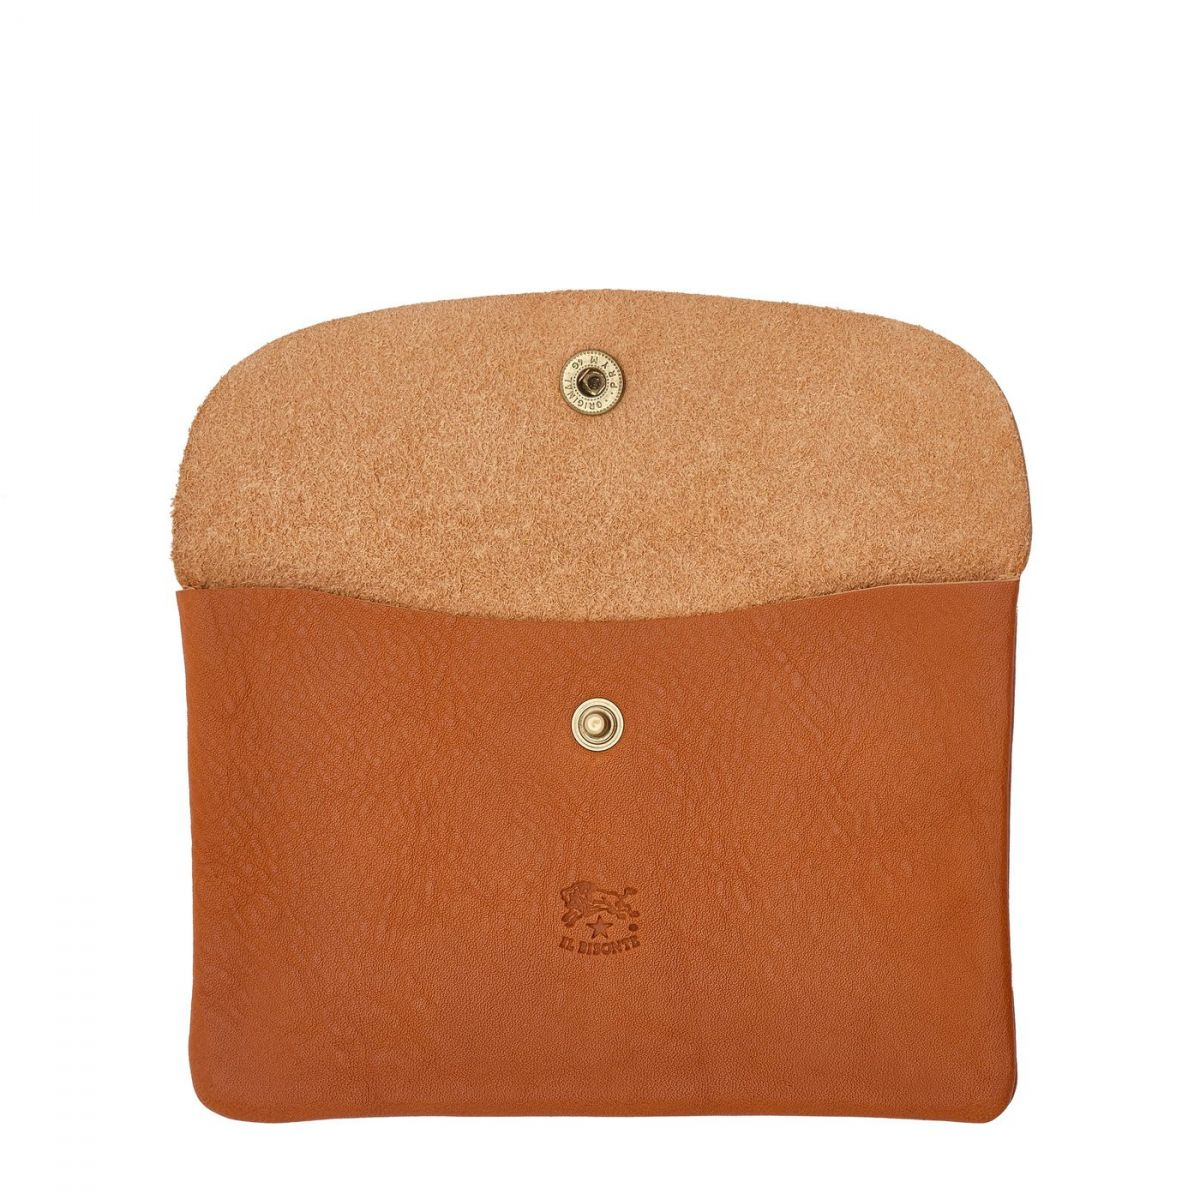 Case  in Cowhide Double Leather SCA007 color Caramel | Details